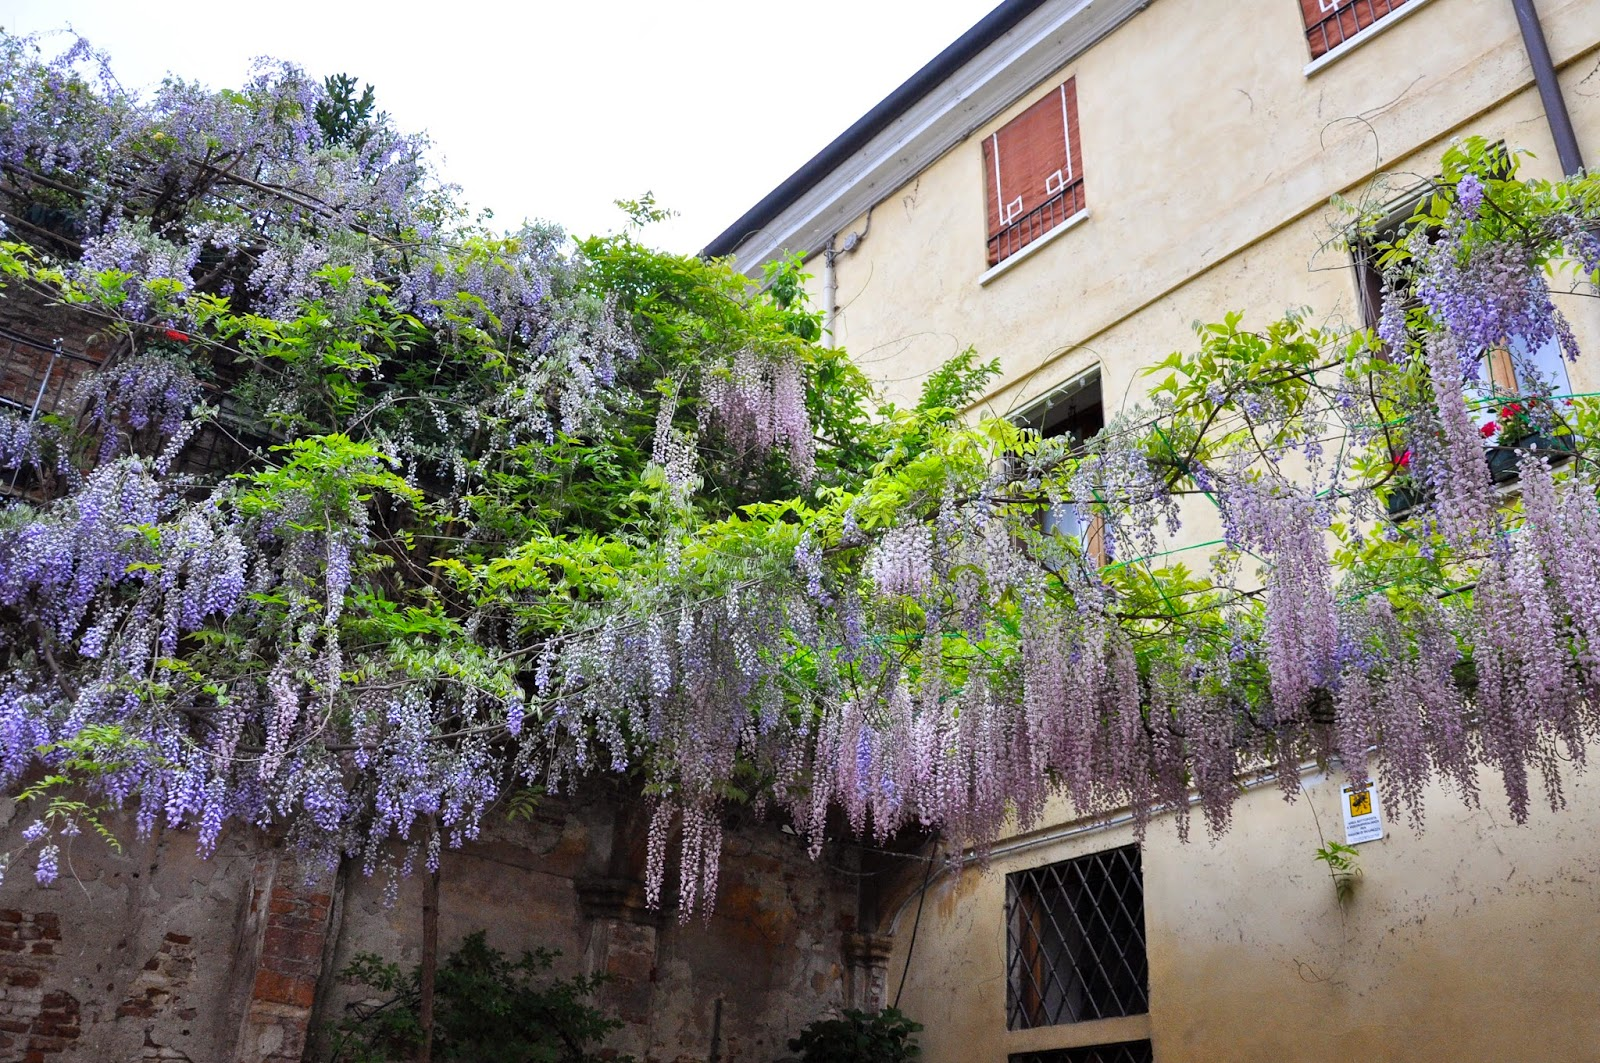 Under the flowering wisteria, Vicenza, Italy